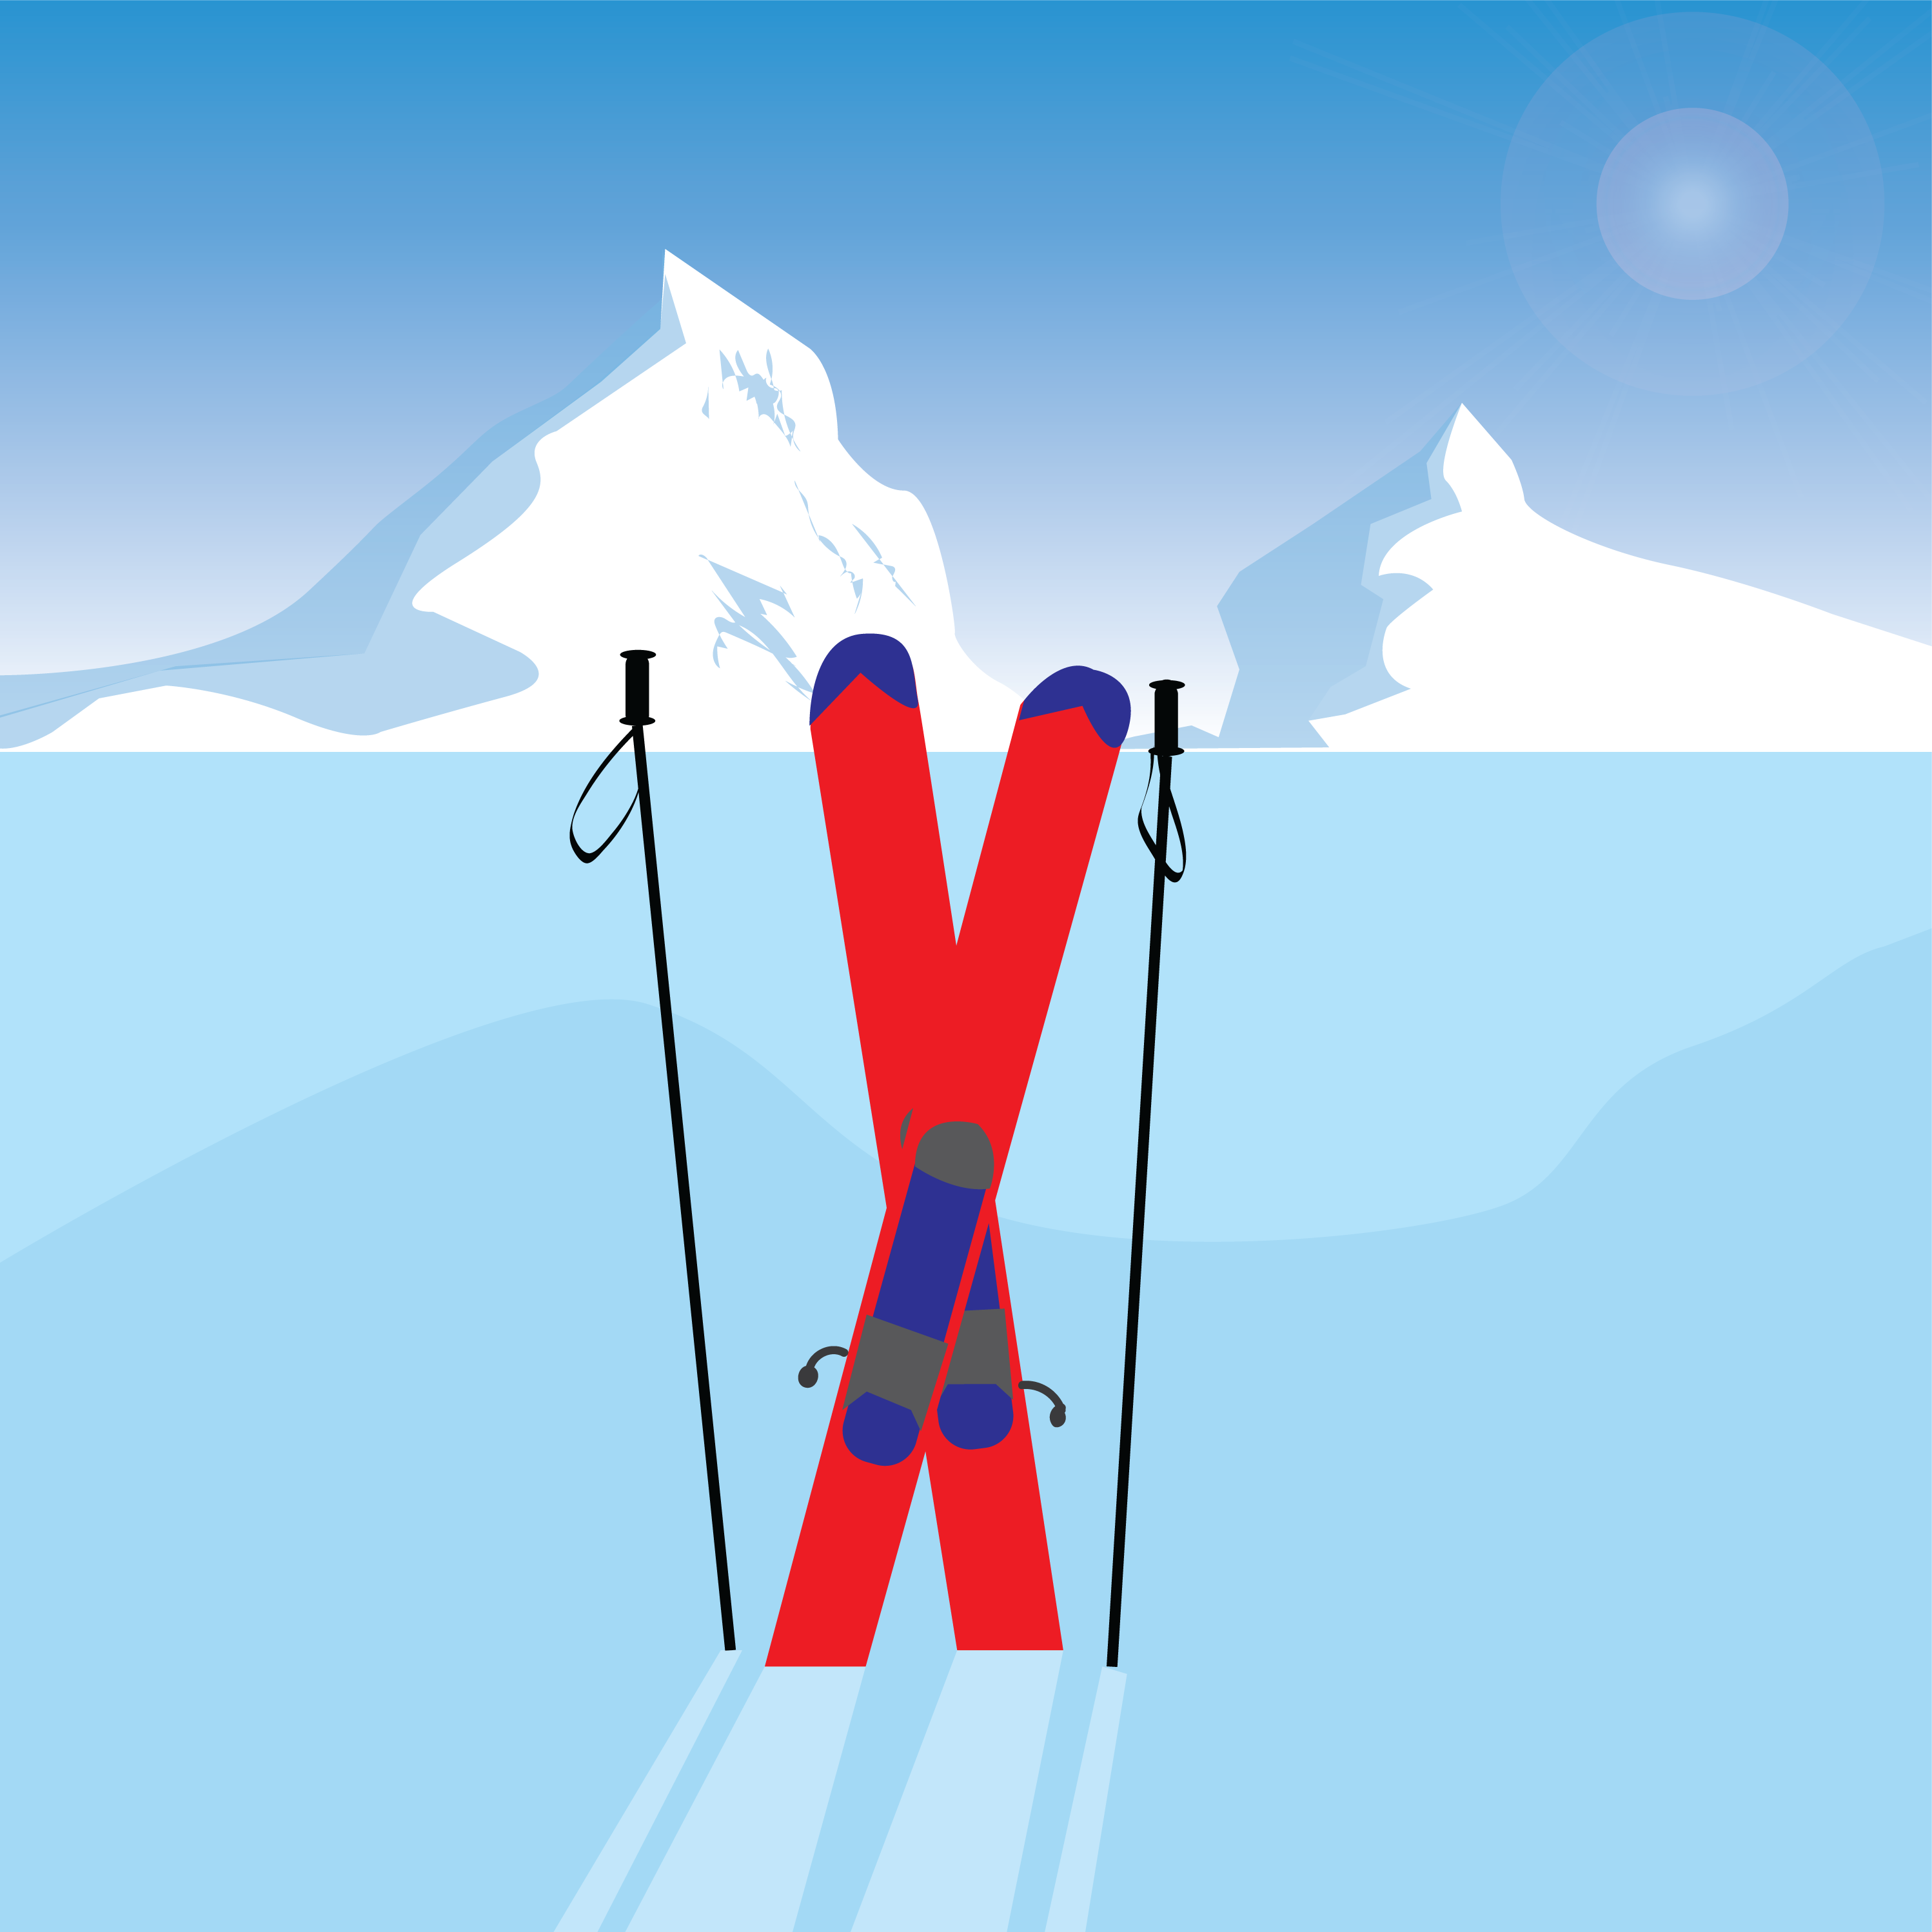 ski scene by Gabrielle Marchan for use by 360 Magazine